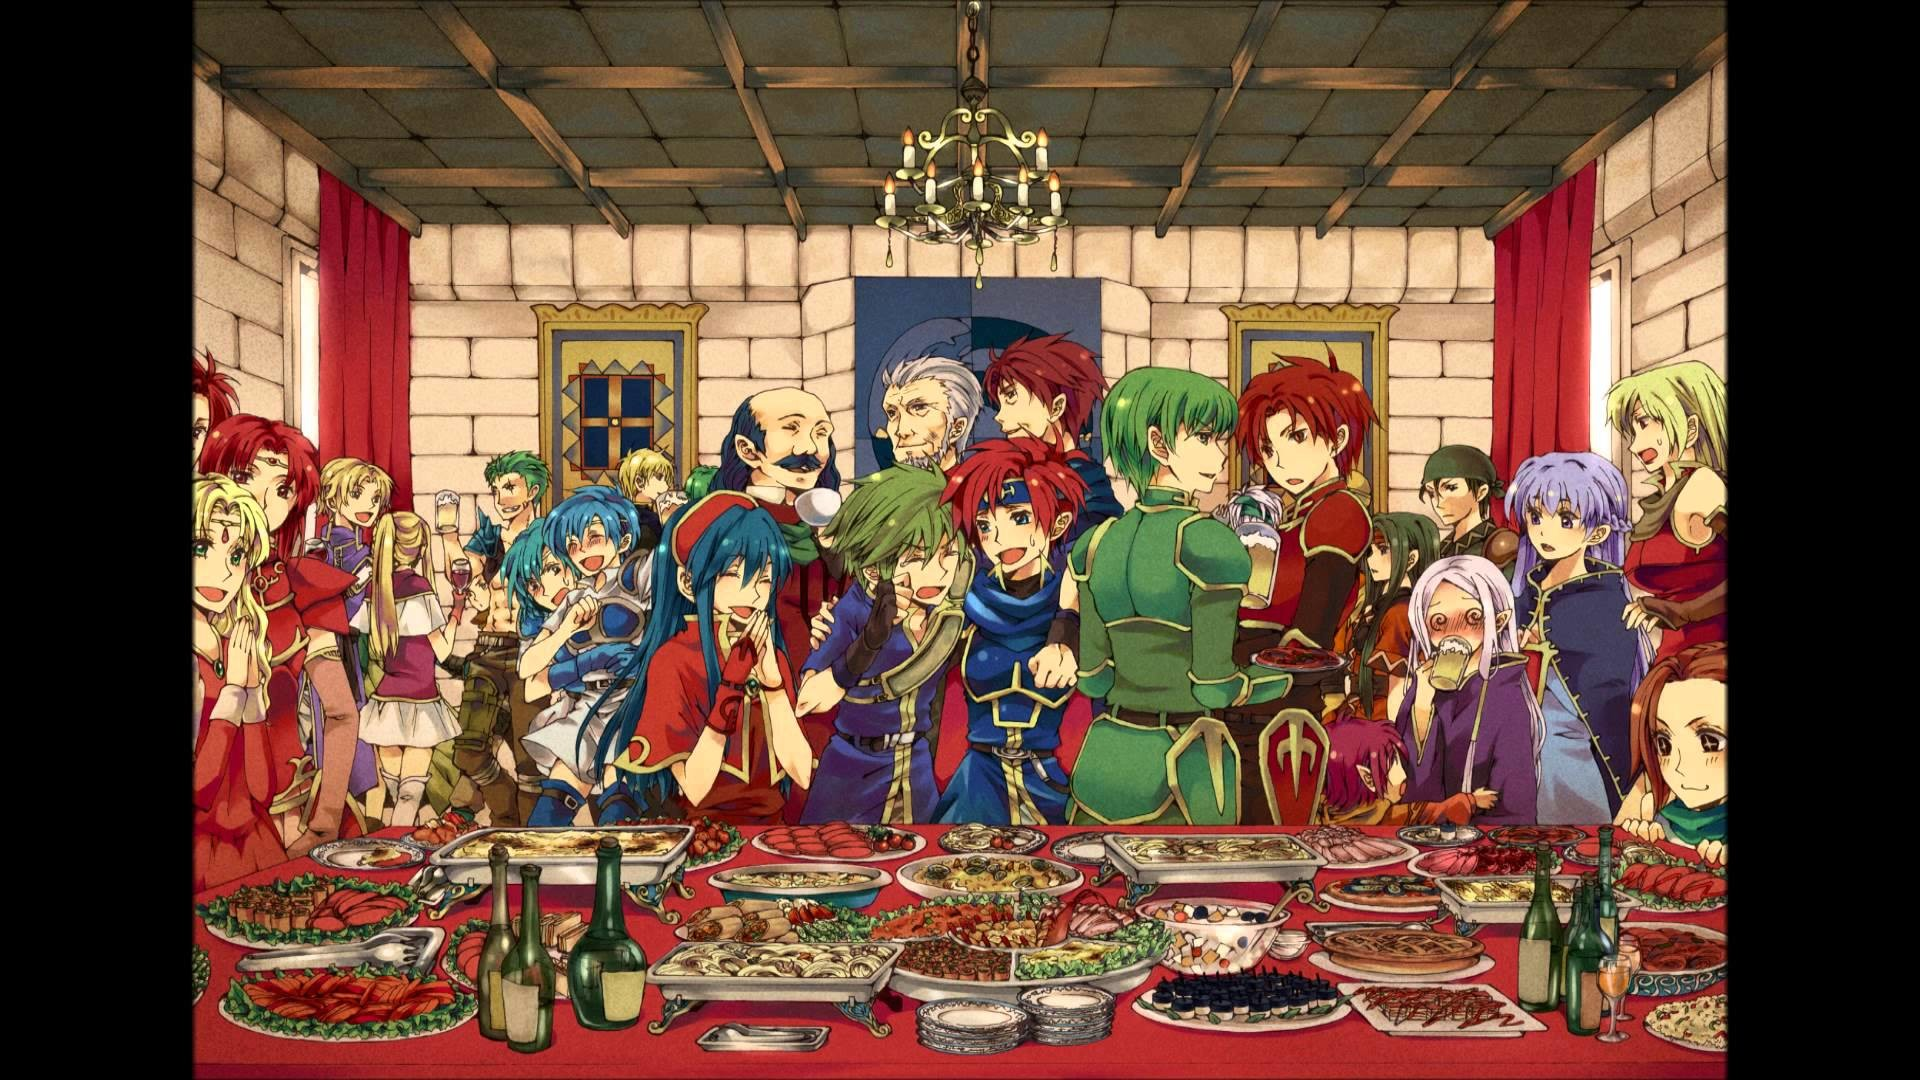 BGM 14 | Fire Emblem: The Binding Blade – Beyond the Distant Skies – YouTube